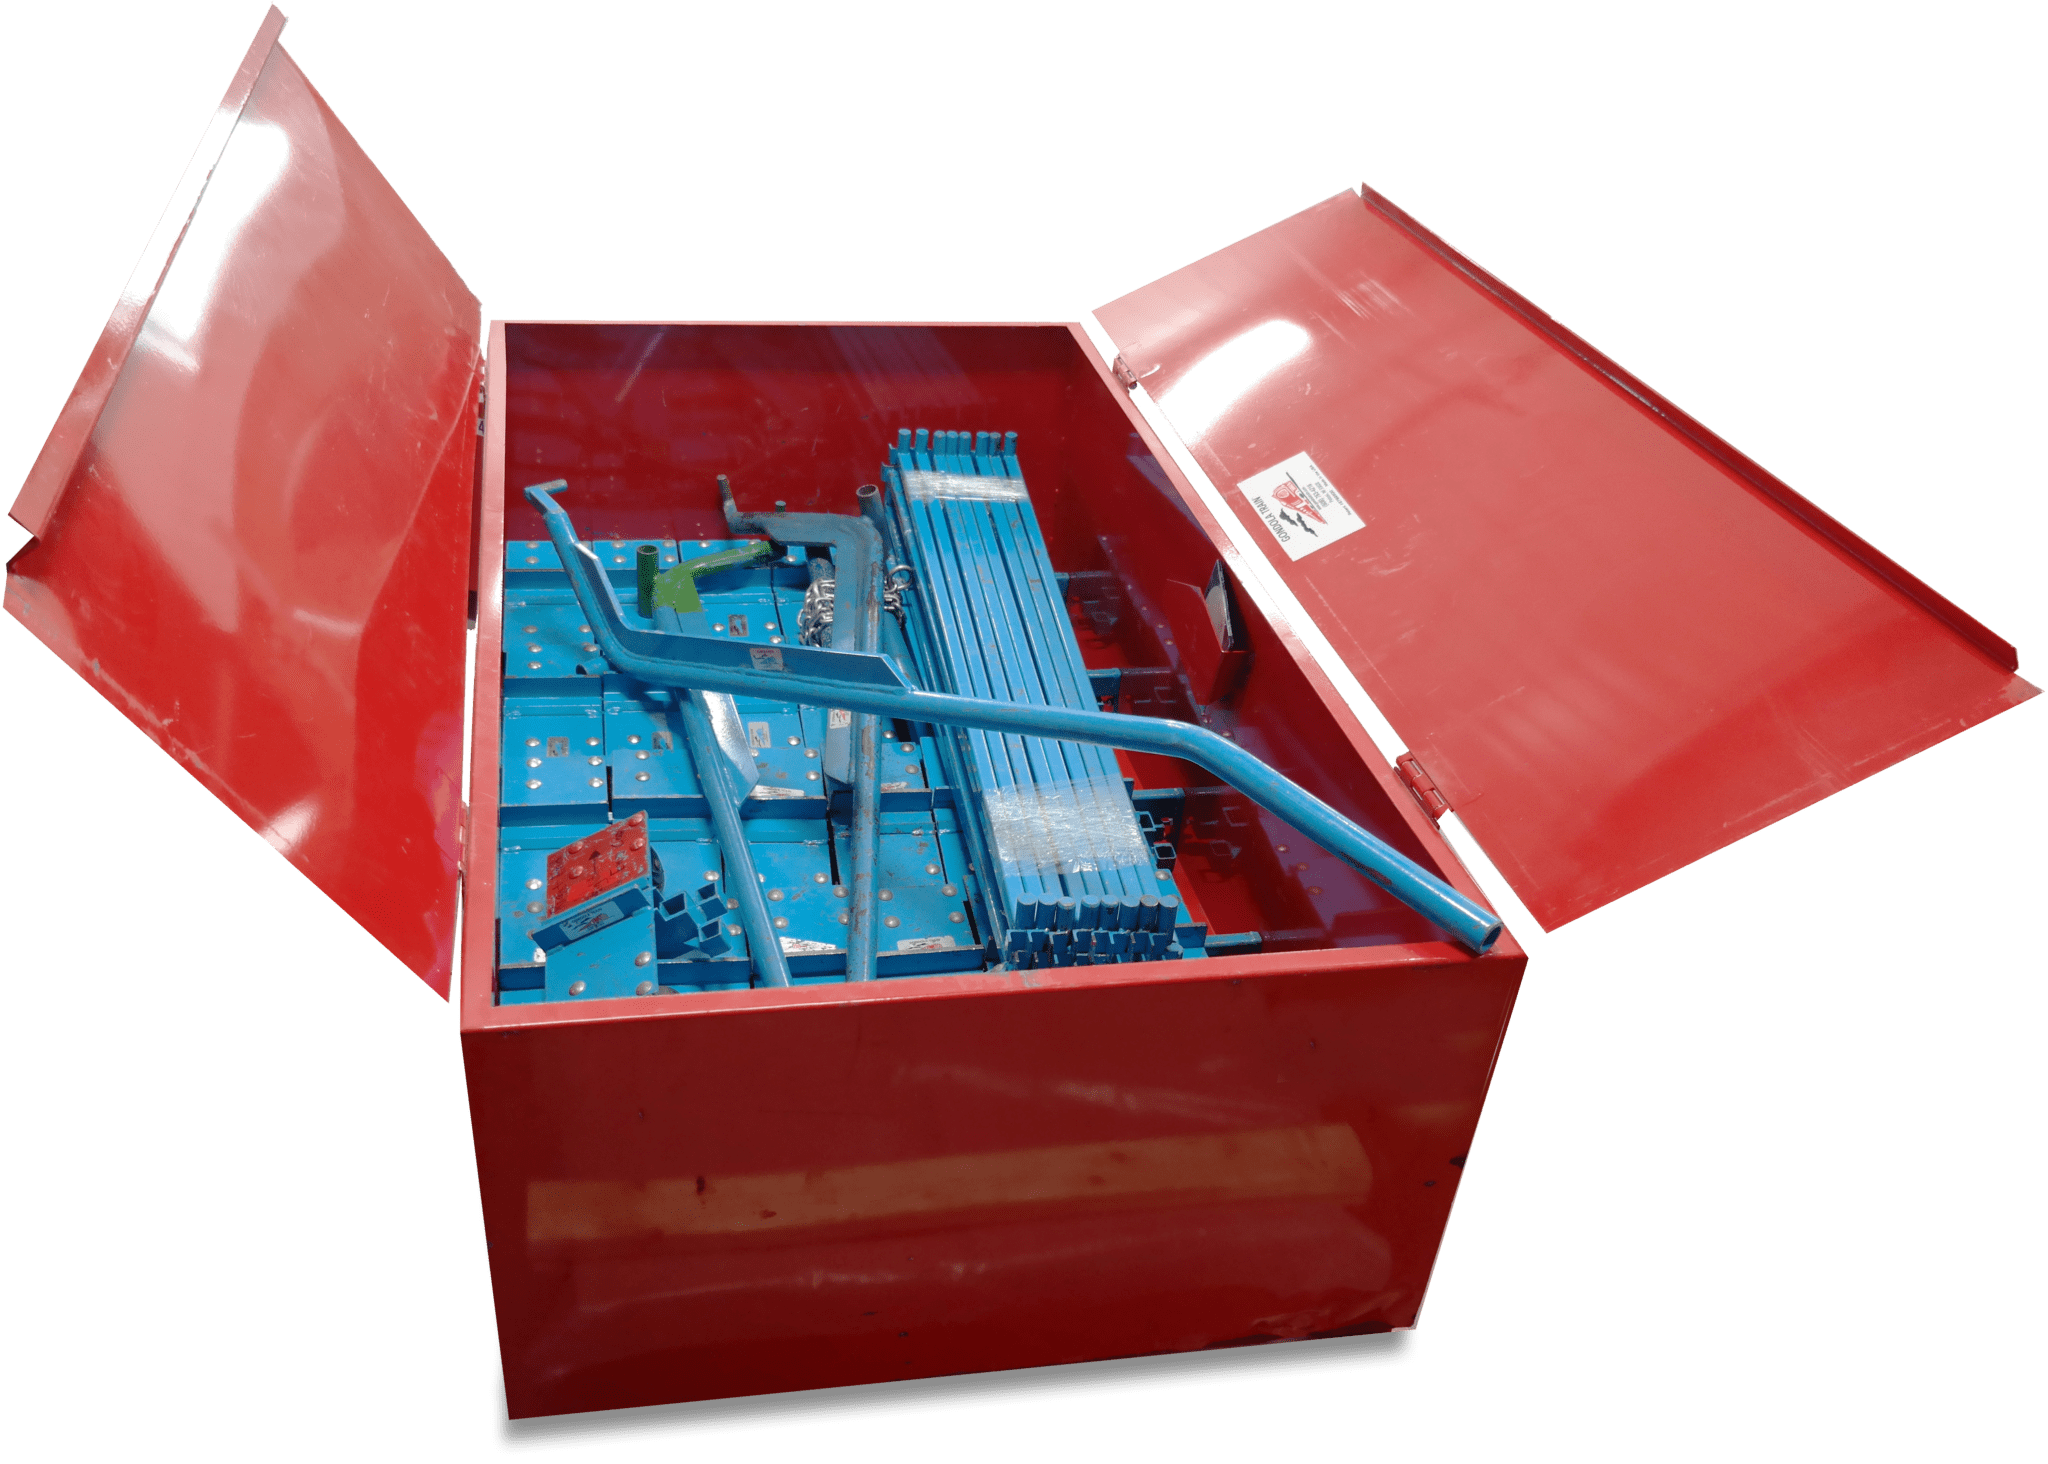 The Blue Streak storage box.